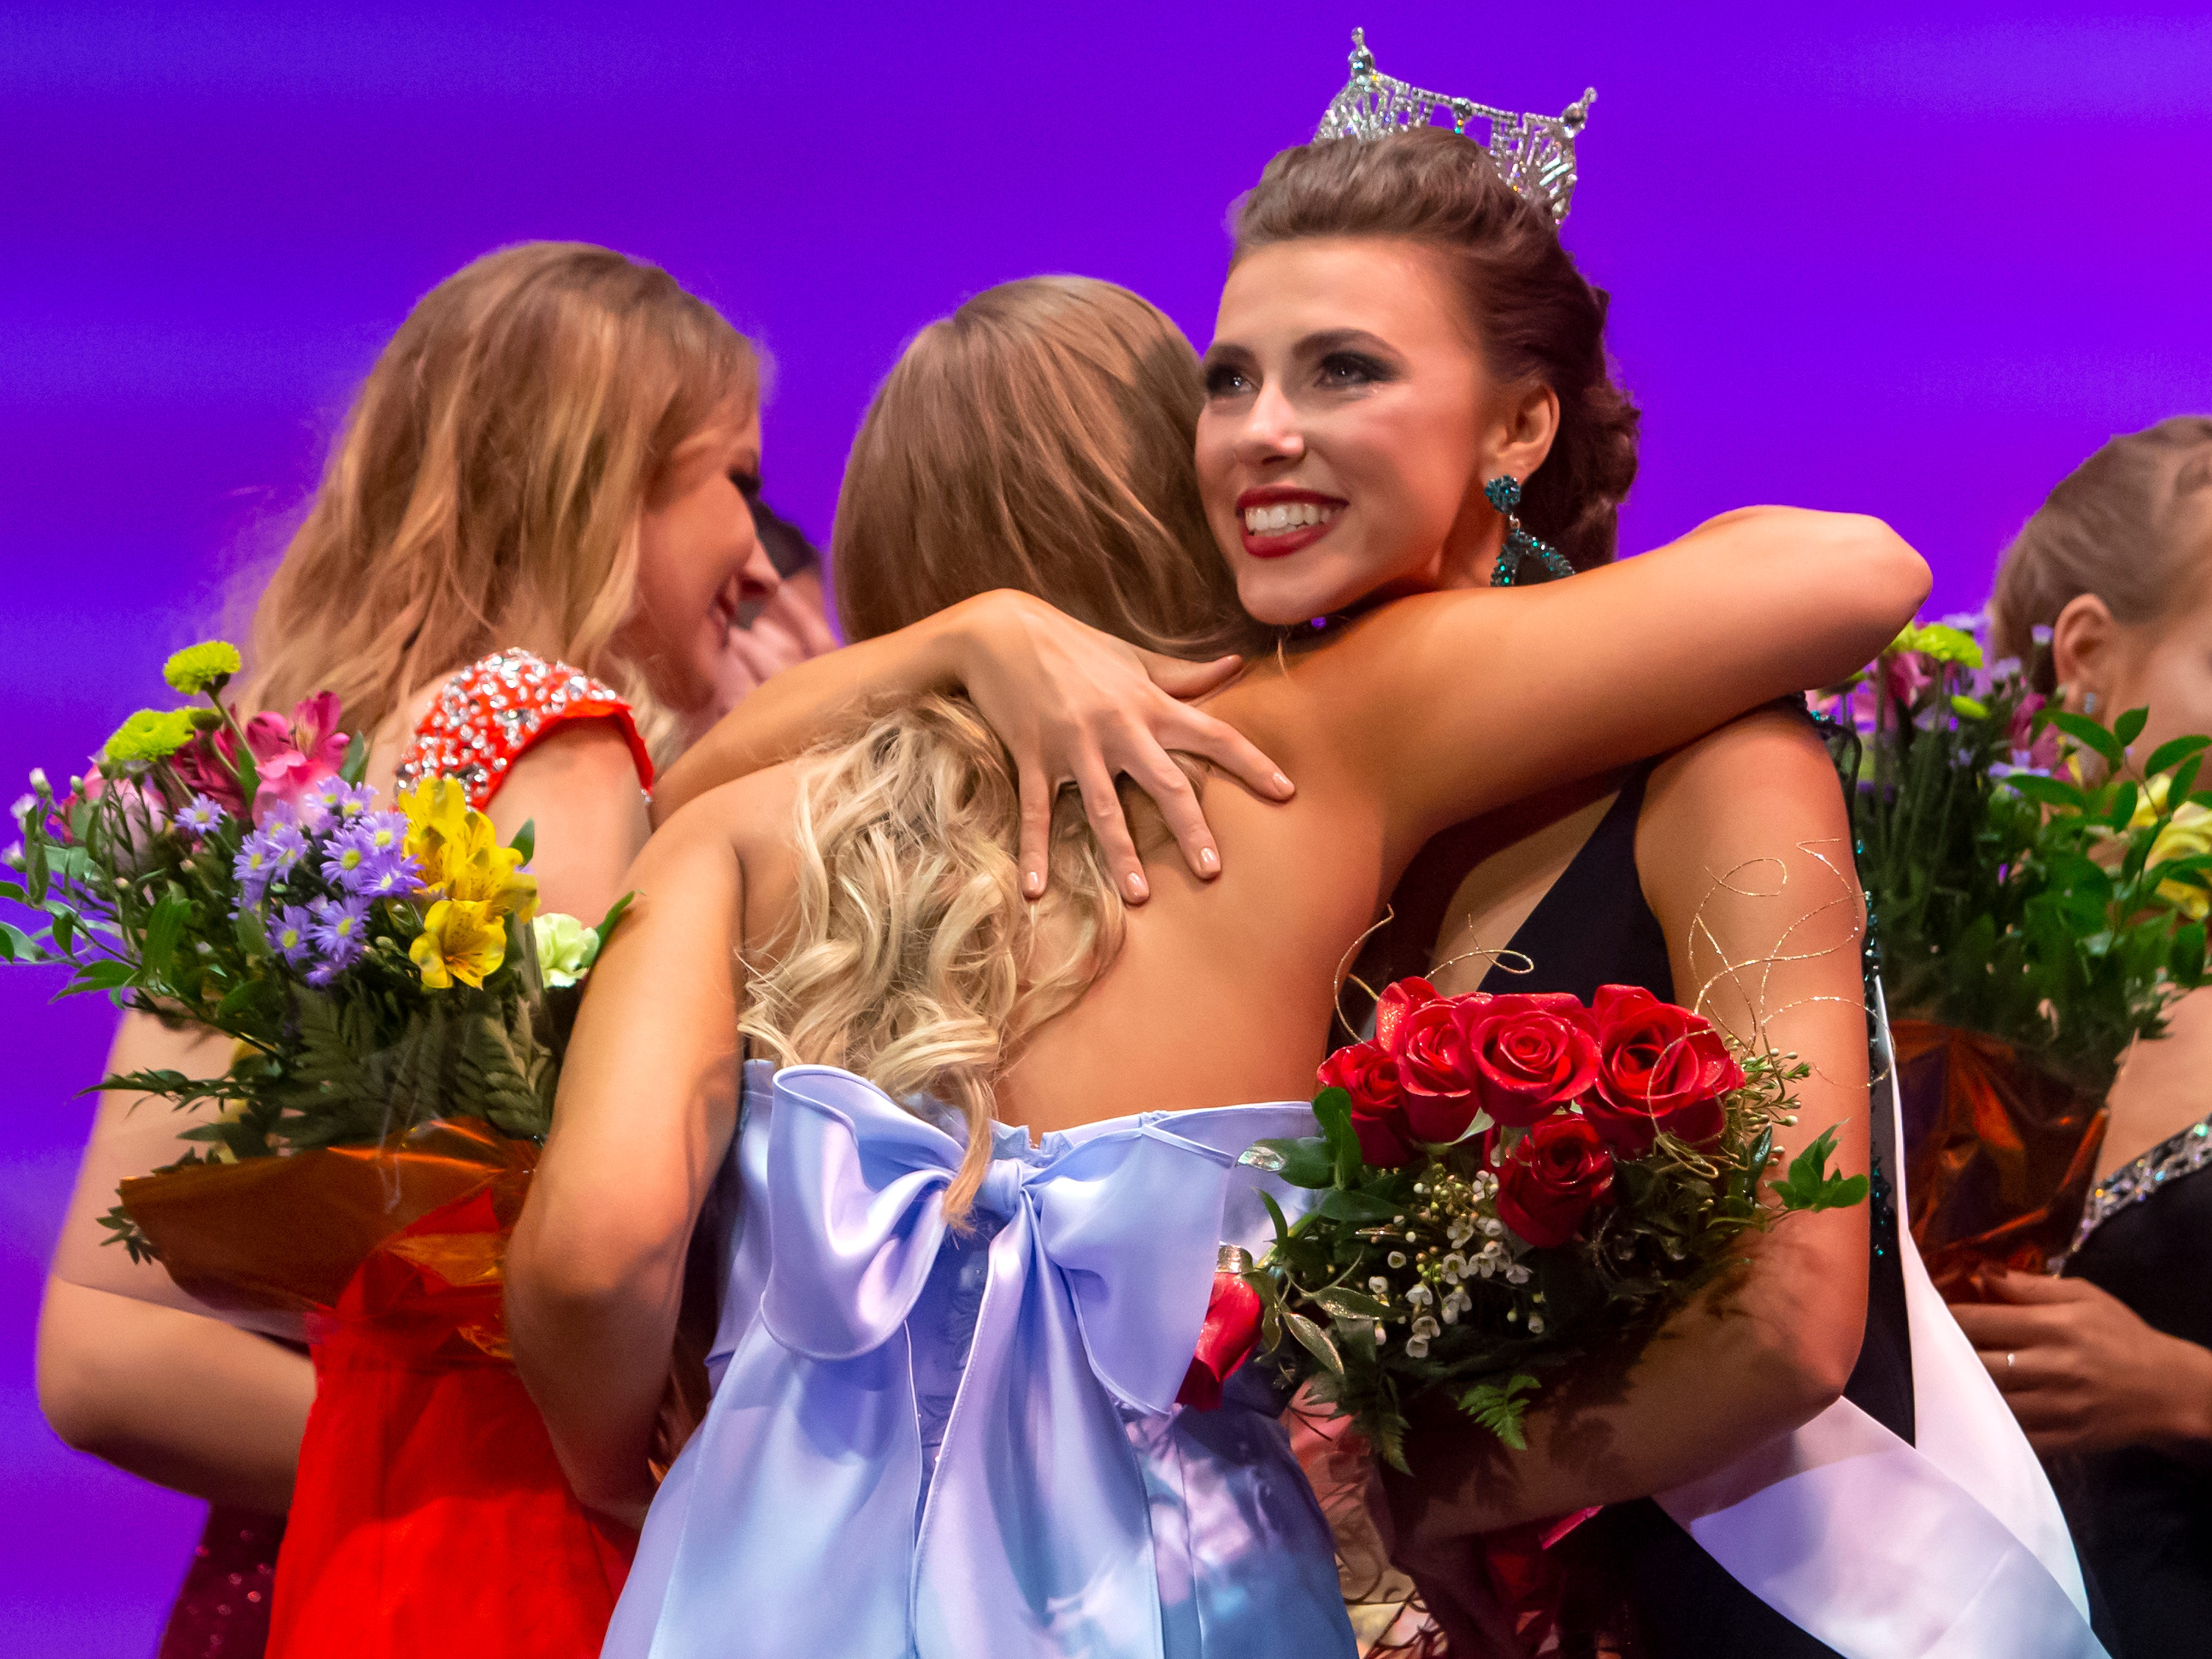 Katrina Mazier receives congratulations winning the Miss Oshkosh crown during the Miss Oshkosh Scholarship Pageant Saturday, March 2, 2019, at Alberta Kimball Auditorium in Oshkosh, Wis.